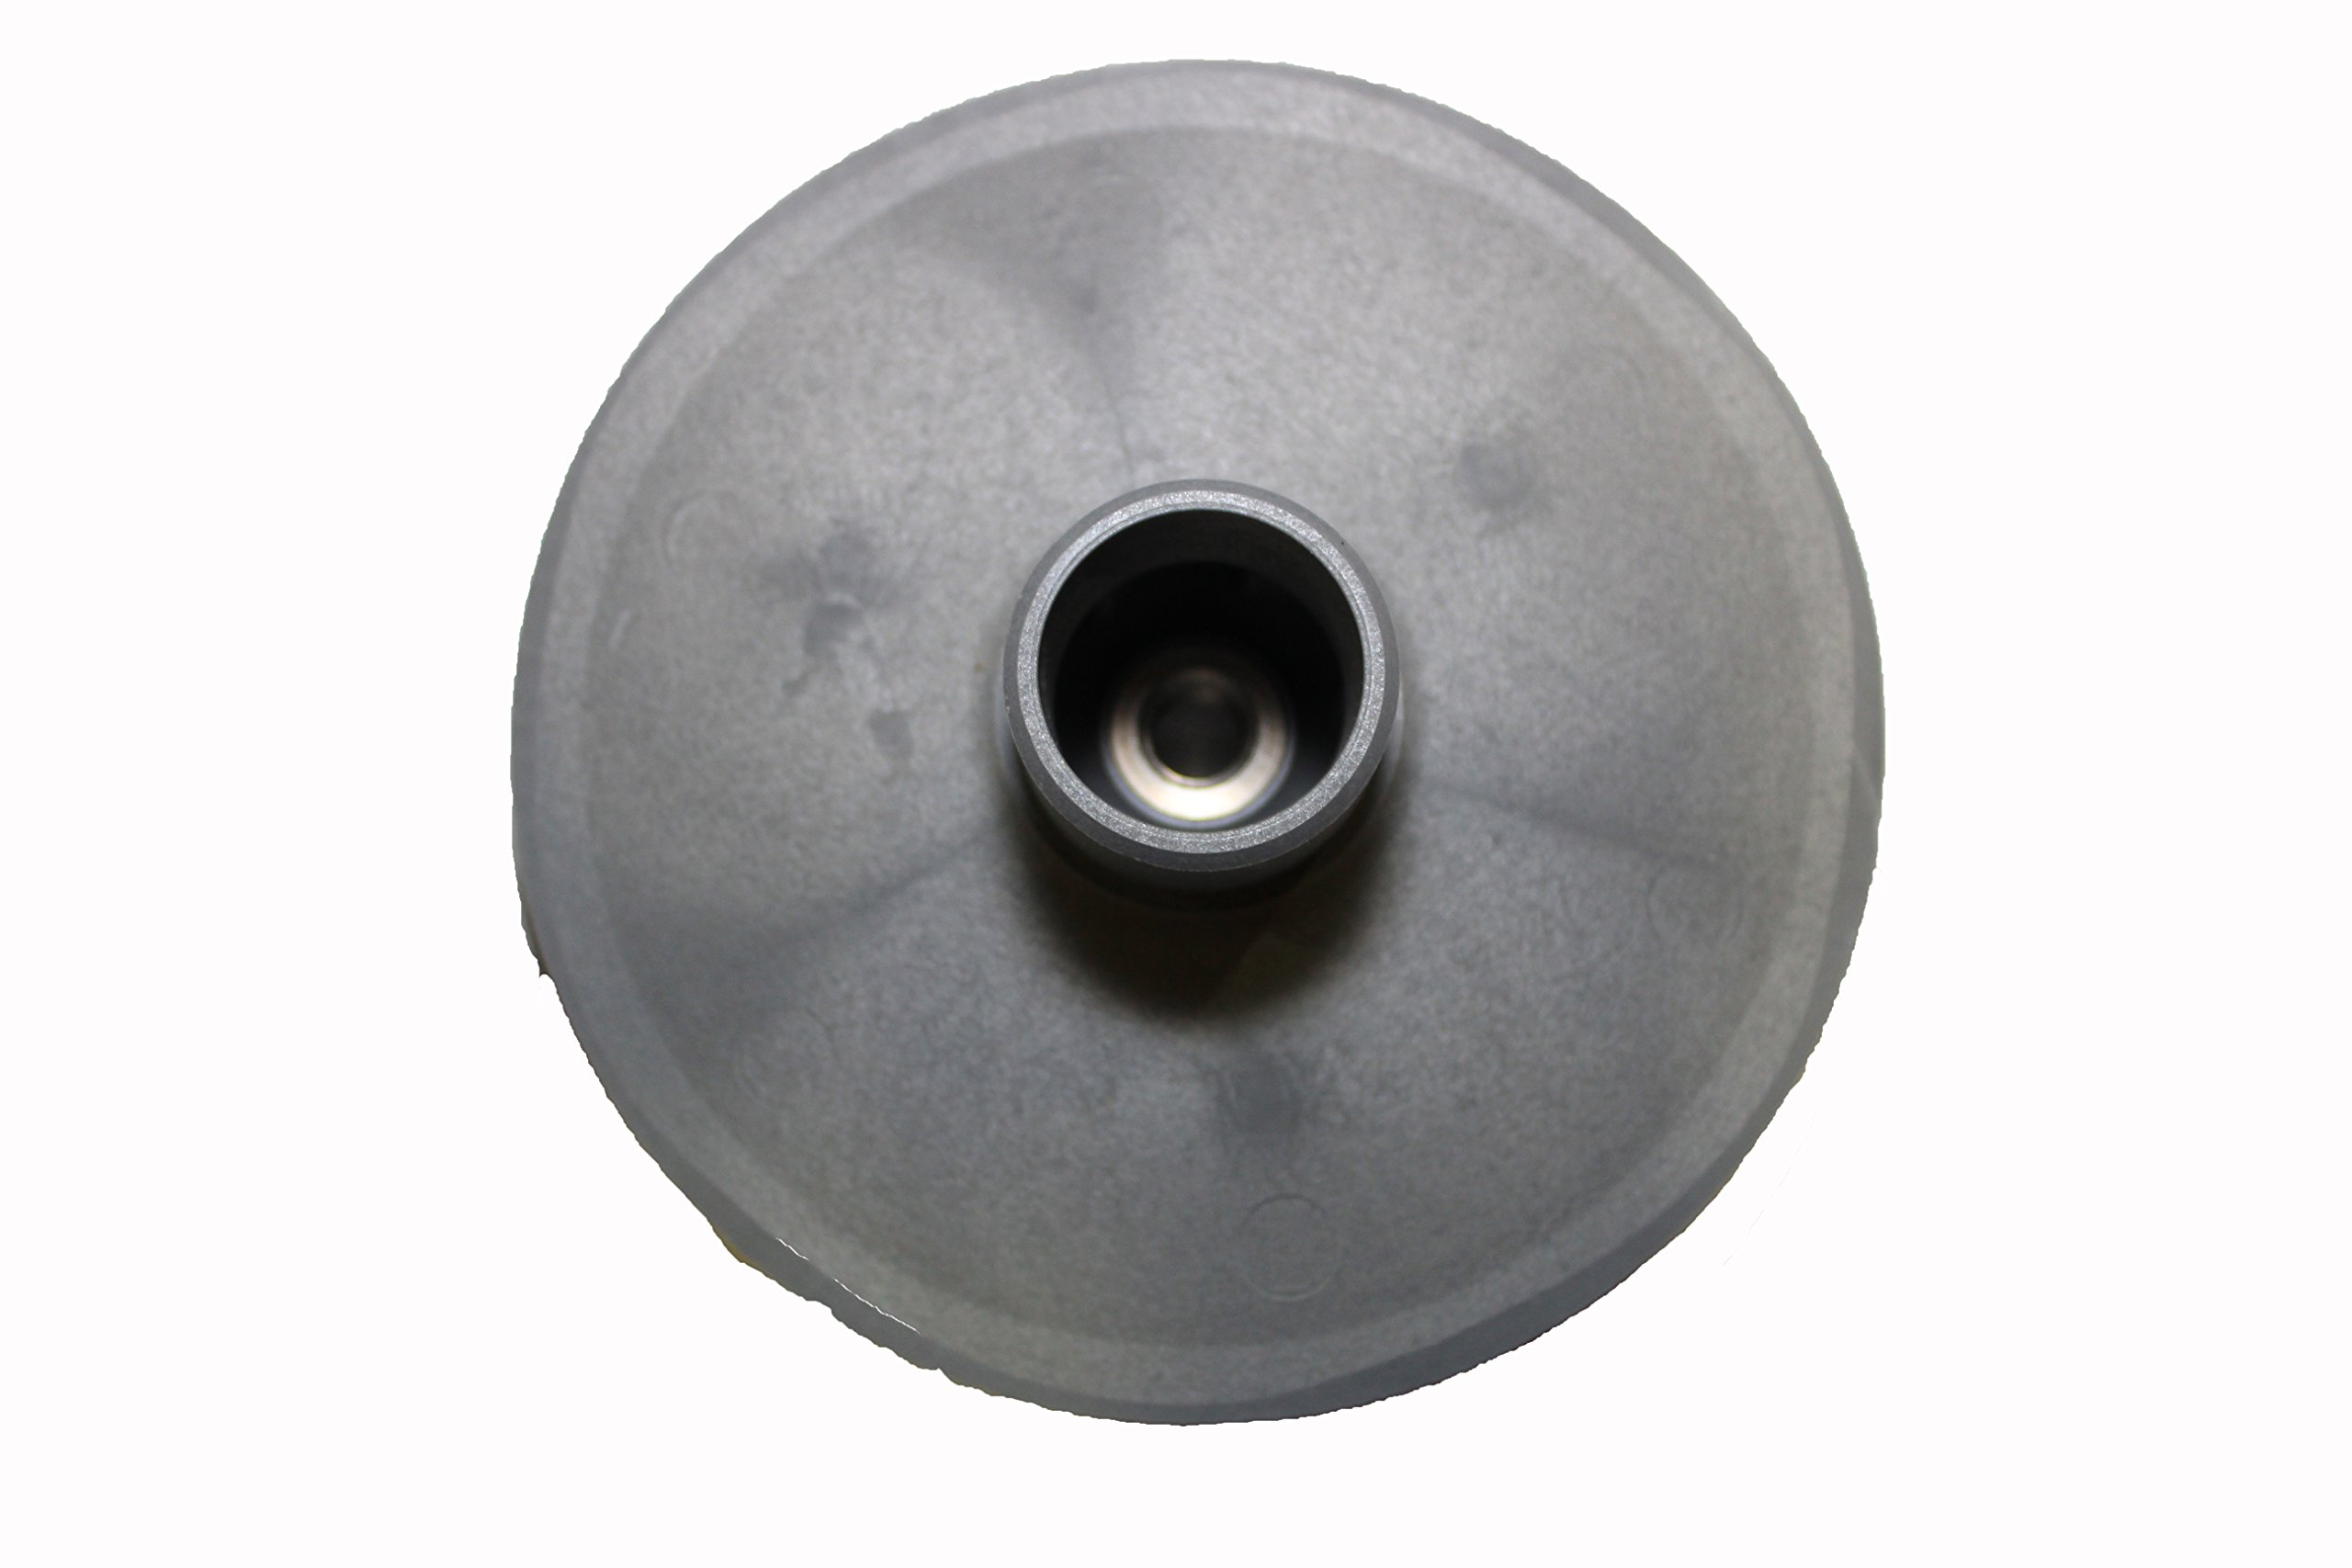 Goulds 2K713 Impeller, Works with GT20 and Gt203 Irrigators.